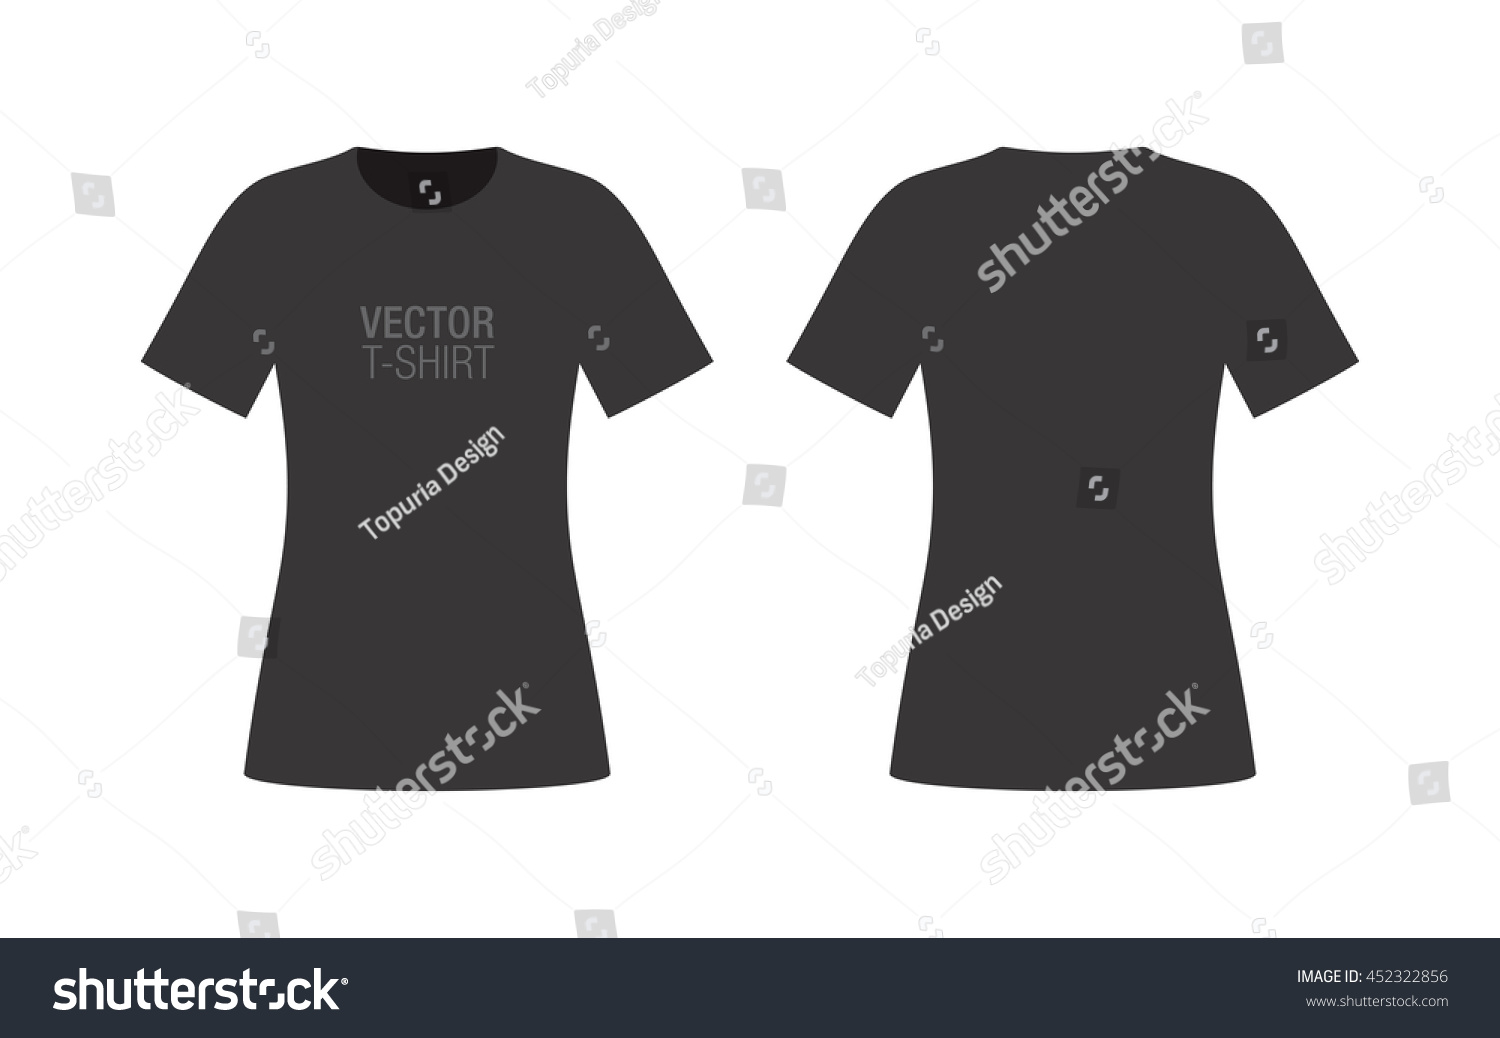 Black t shirt template vector - Vector Shirt Mockup Women S Black Short Sleeve T Shirt Template Front And Back